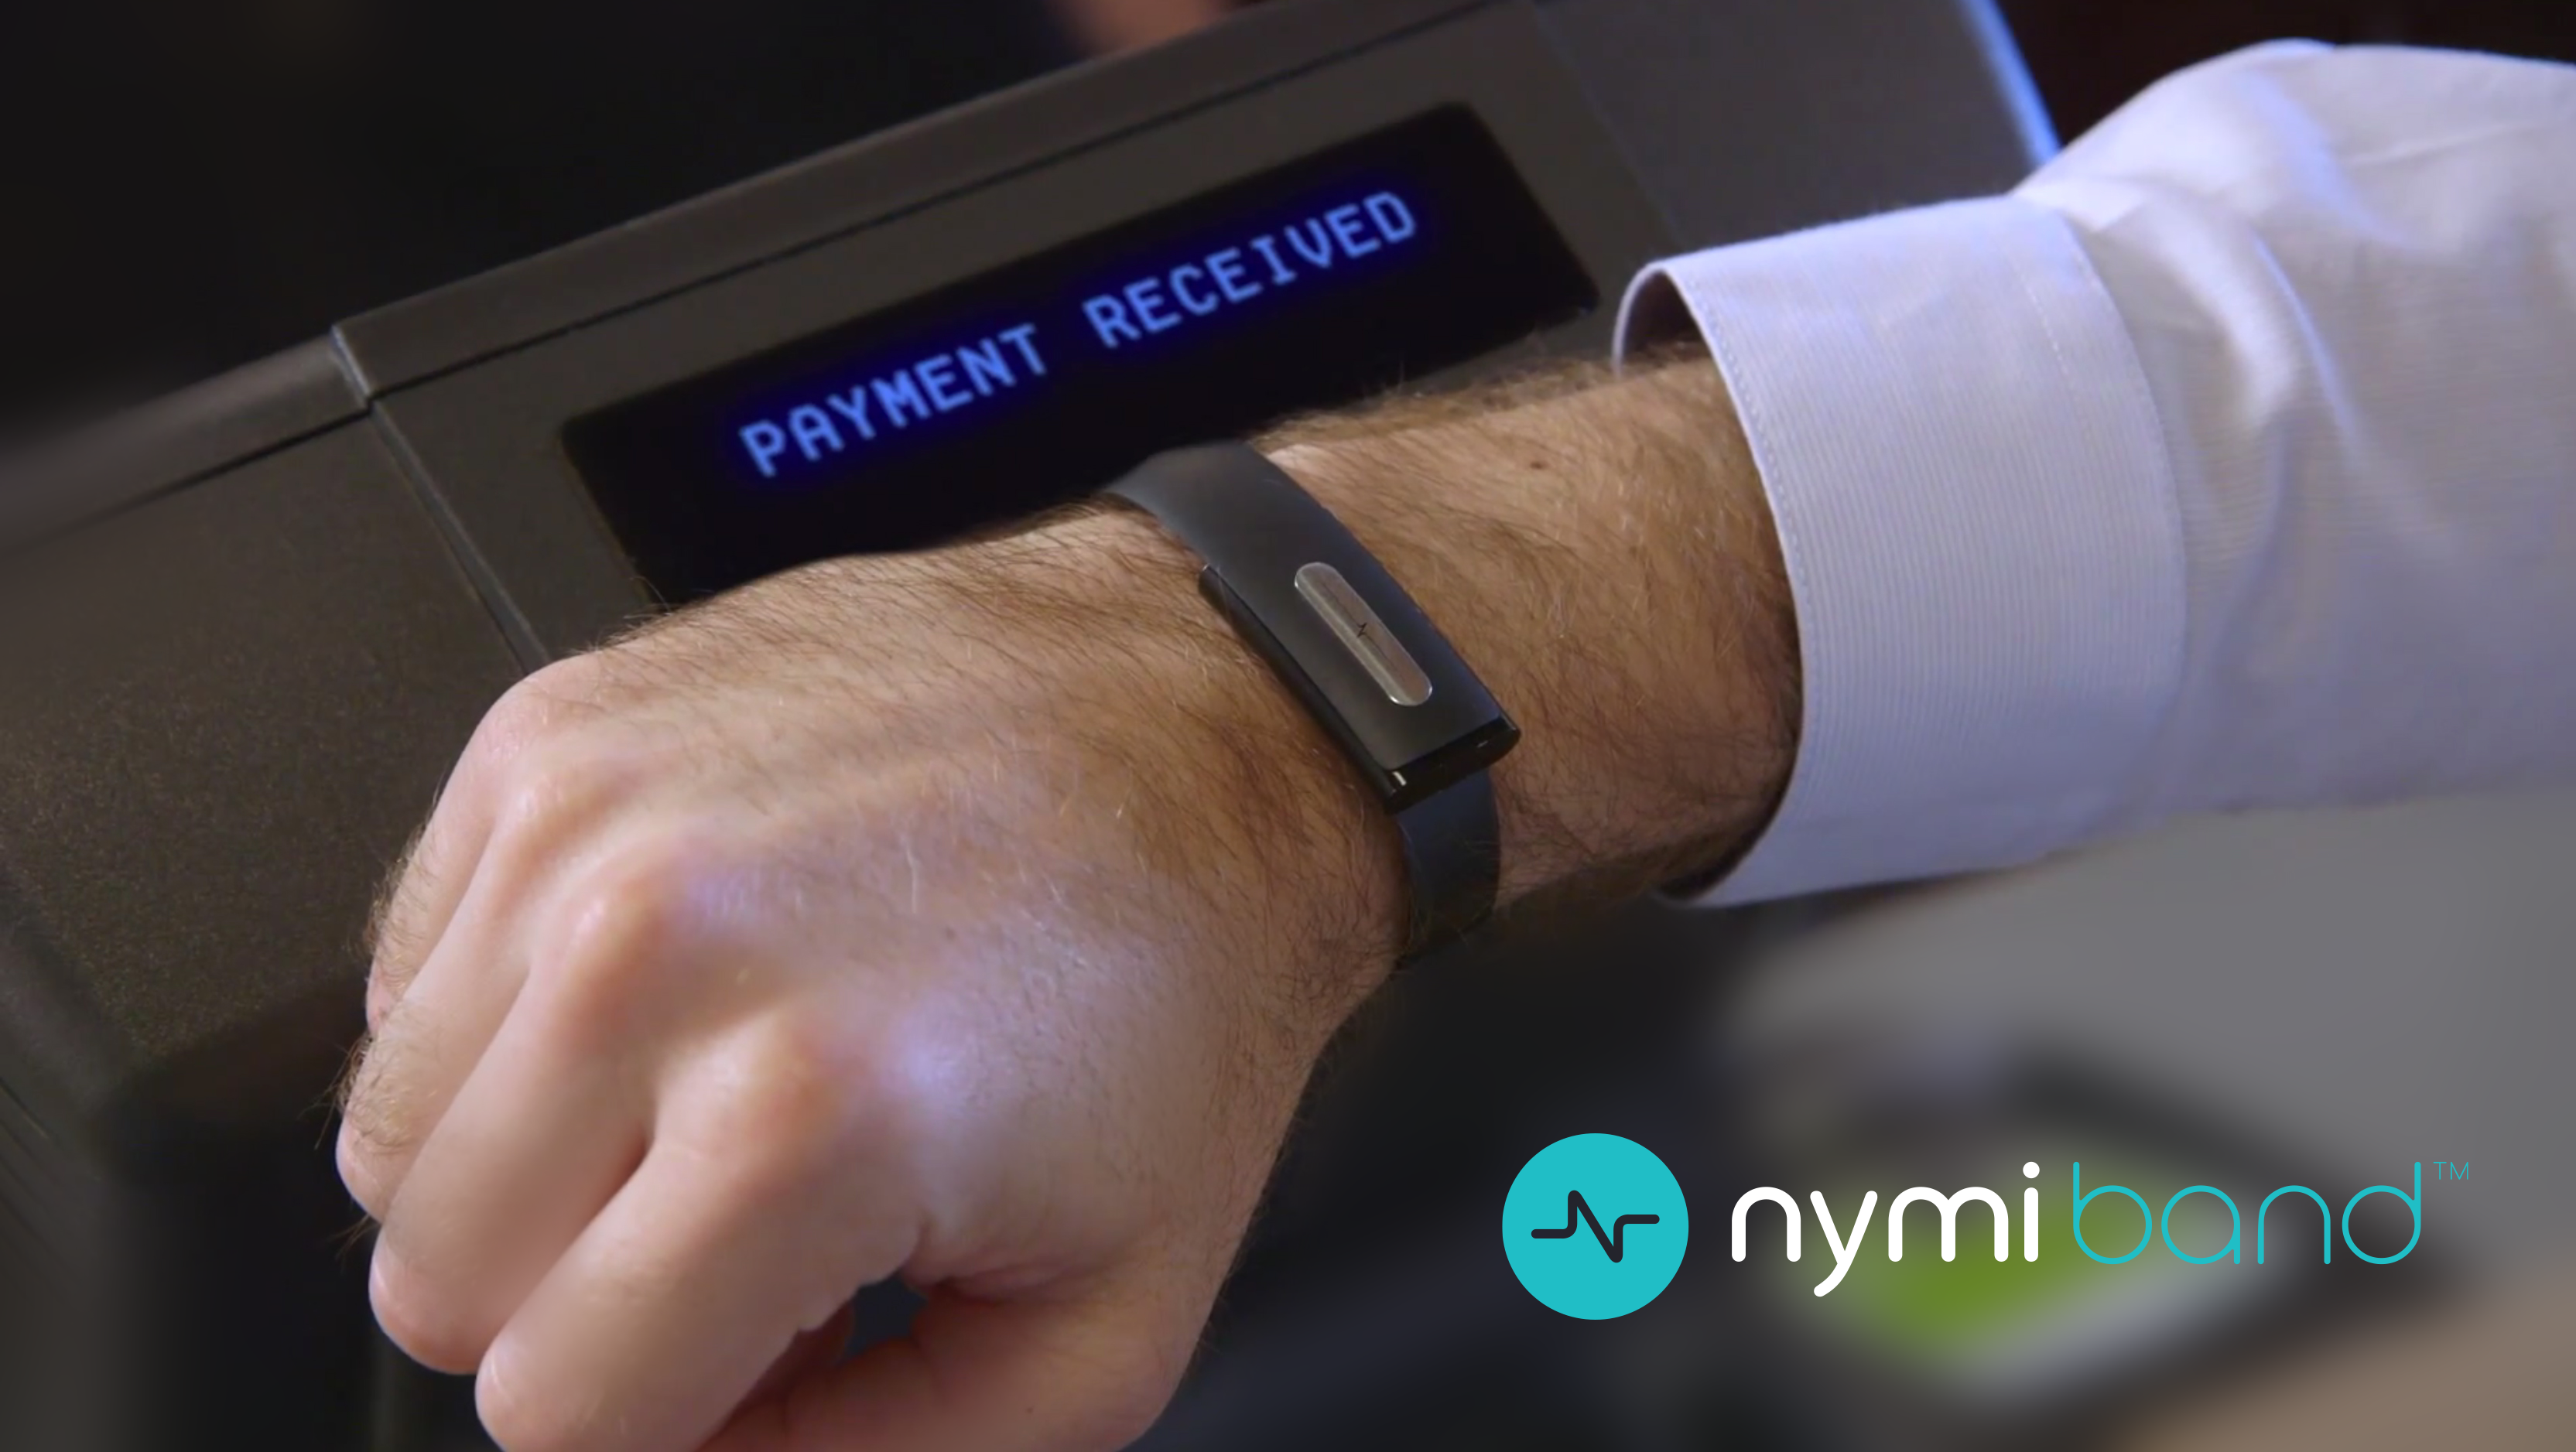 Paying For Stuff With Your Heartbeat Is Now A Thing